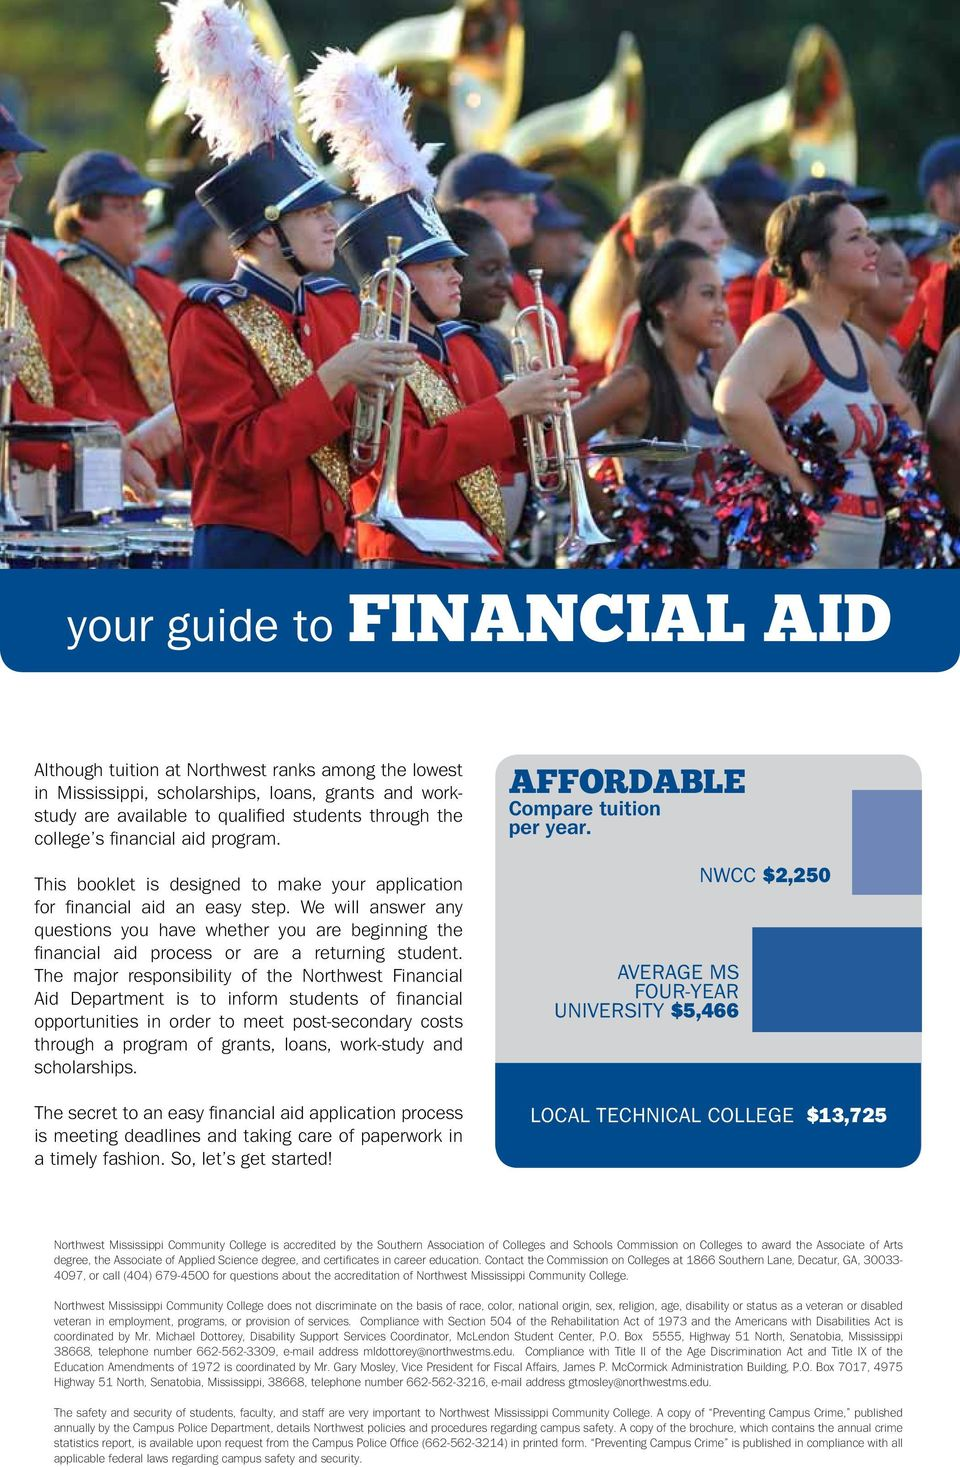 We will answer any questions you have whether you are beginning the financial aid process or are a returning student.